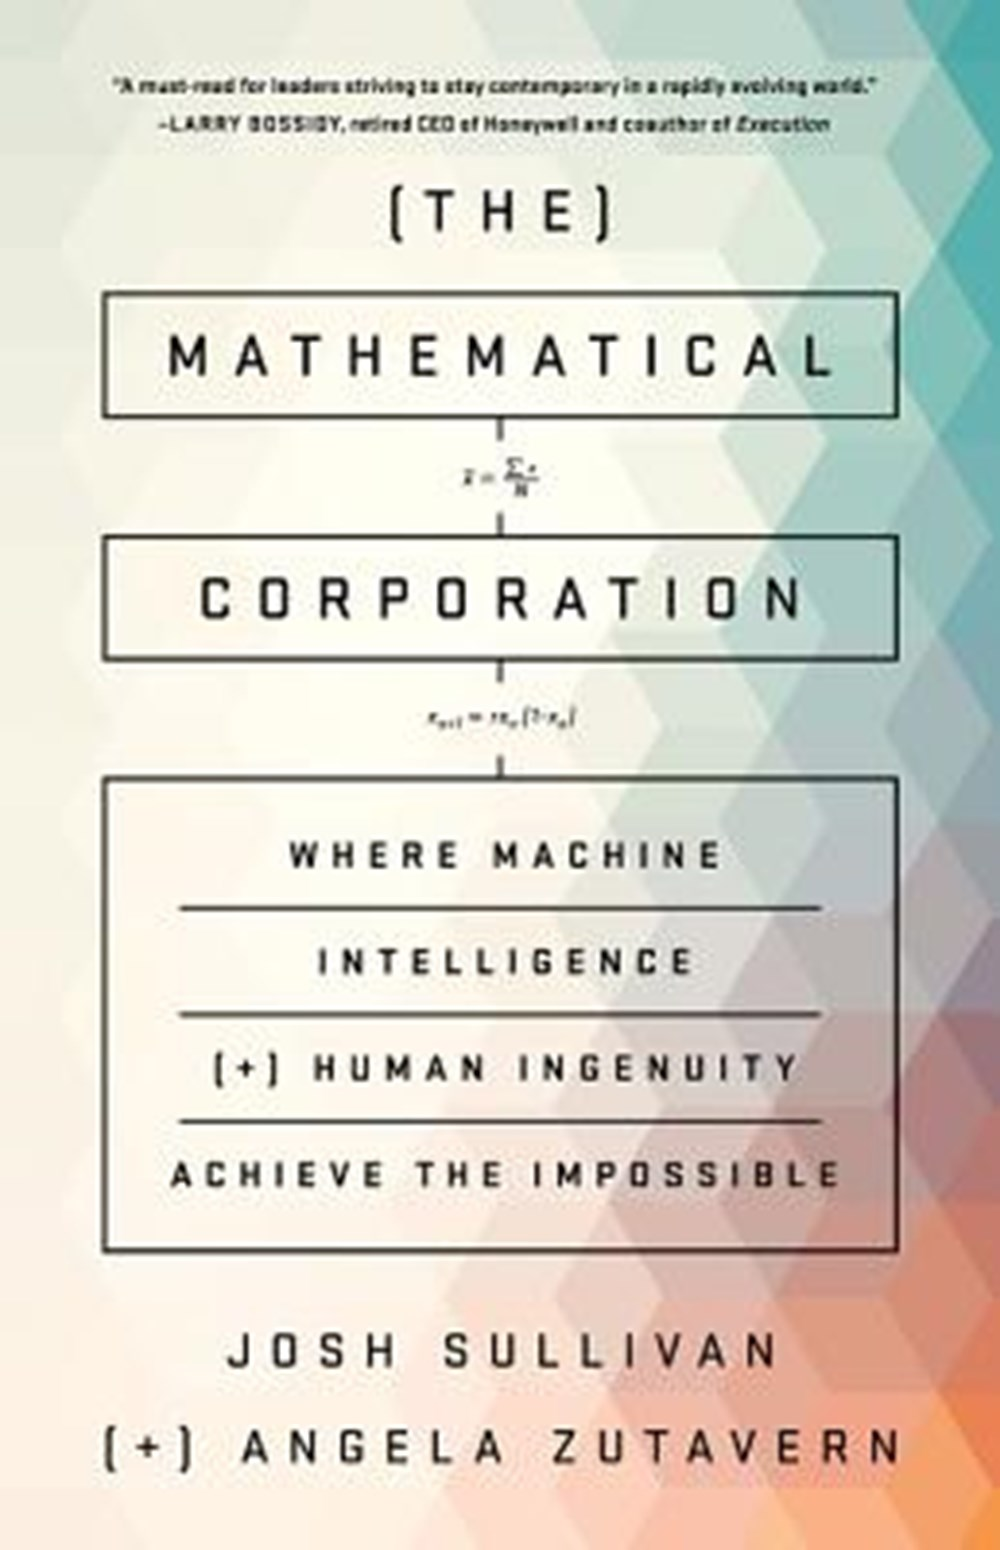 Mathematical Corporation Where Machine Intelligence and Human Ingenuity Achieve the Impossible